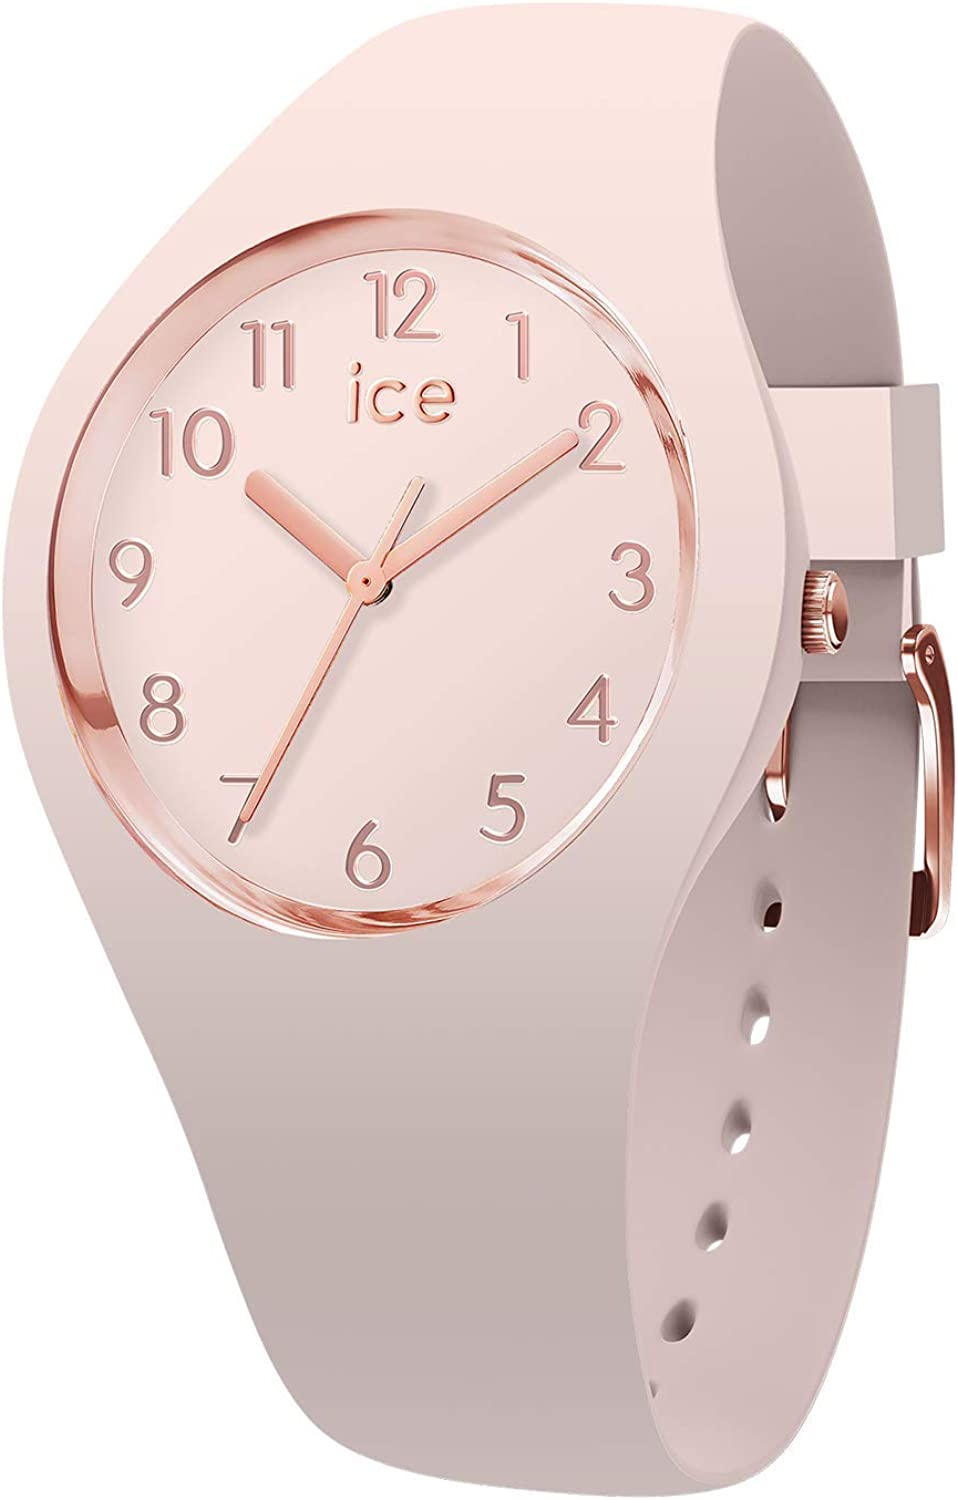 Ice-Watch - ICE glam colour Nude - Reloj rosa para Mujer con Correa de silicona - 015330 (Small)